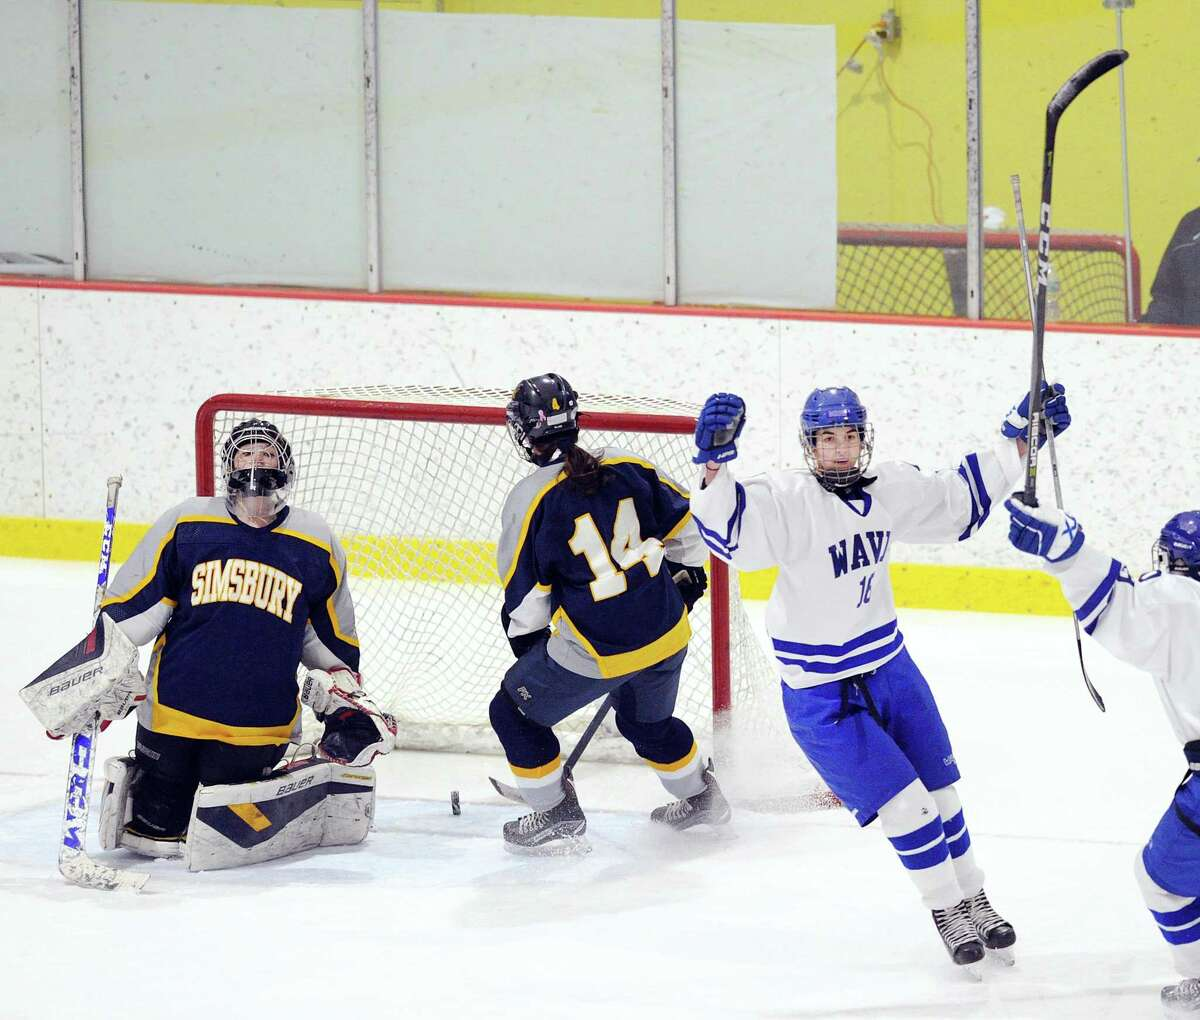 Darien's Shea van den Broek, right, reacts after beating Simsbury goalie Tori LaCroix, left, scoring the first goal of the game for Darien in the first period of the girls high school state hockey playoff game against Simsbury at Terry Conners Ice Rink in Stamford on March 3, 2018. At center is Mackenzie Lynch (14).